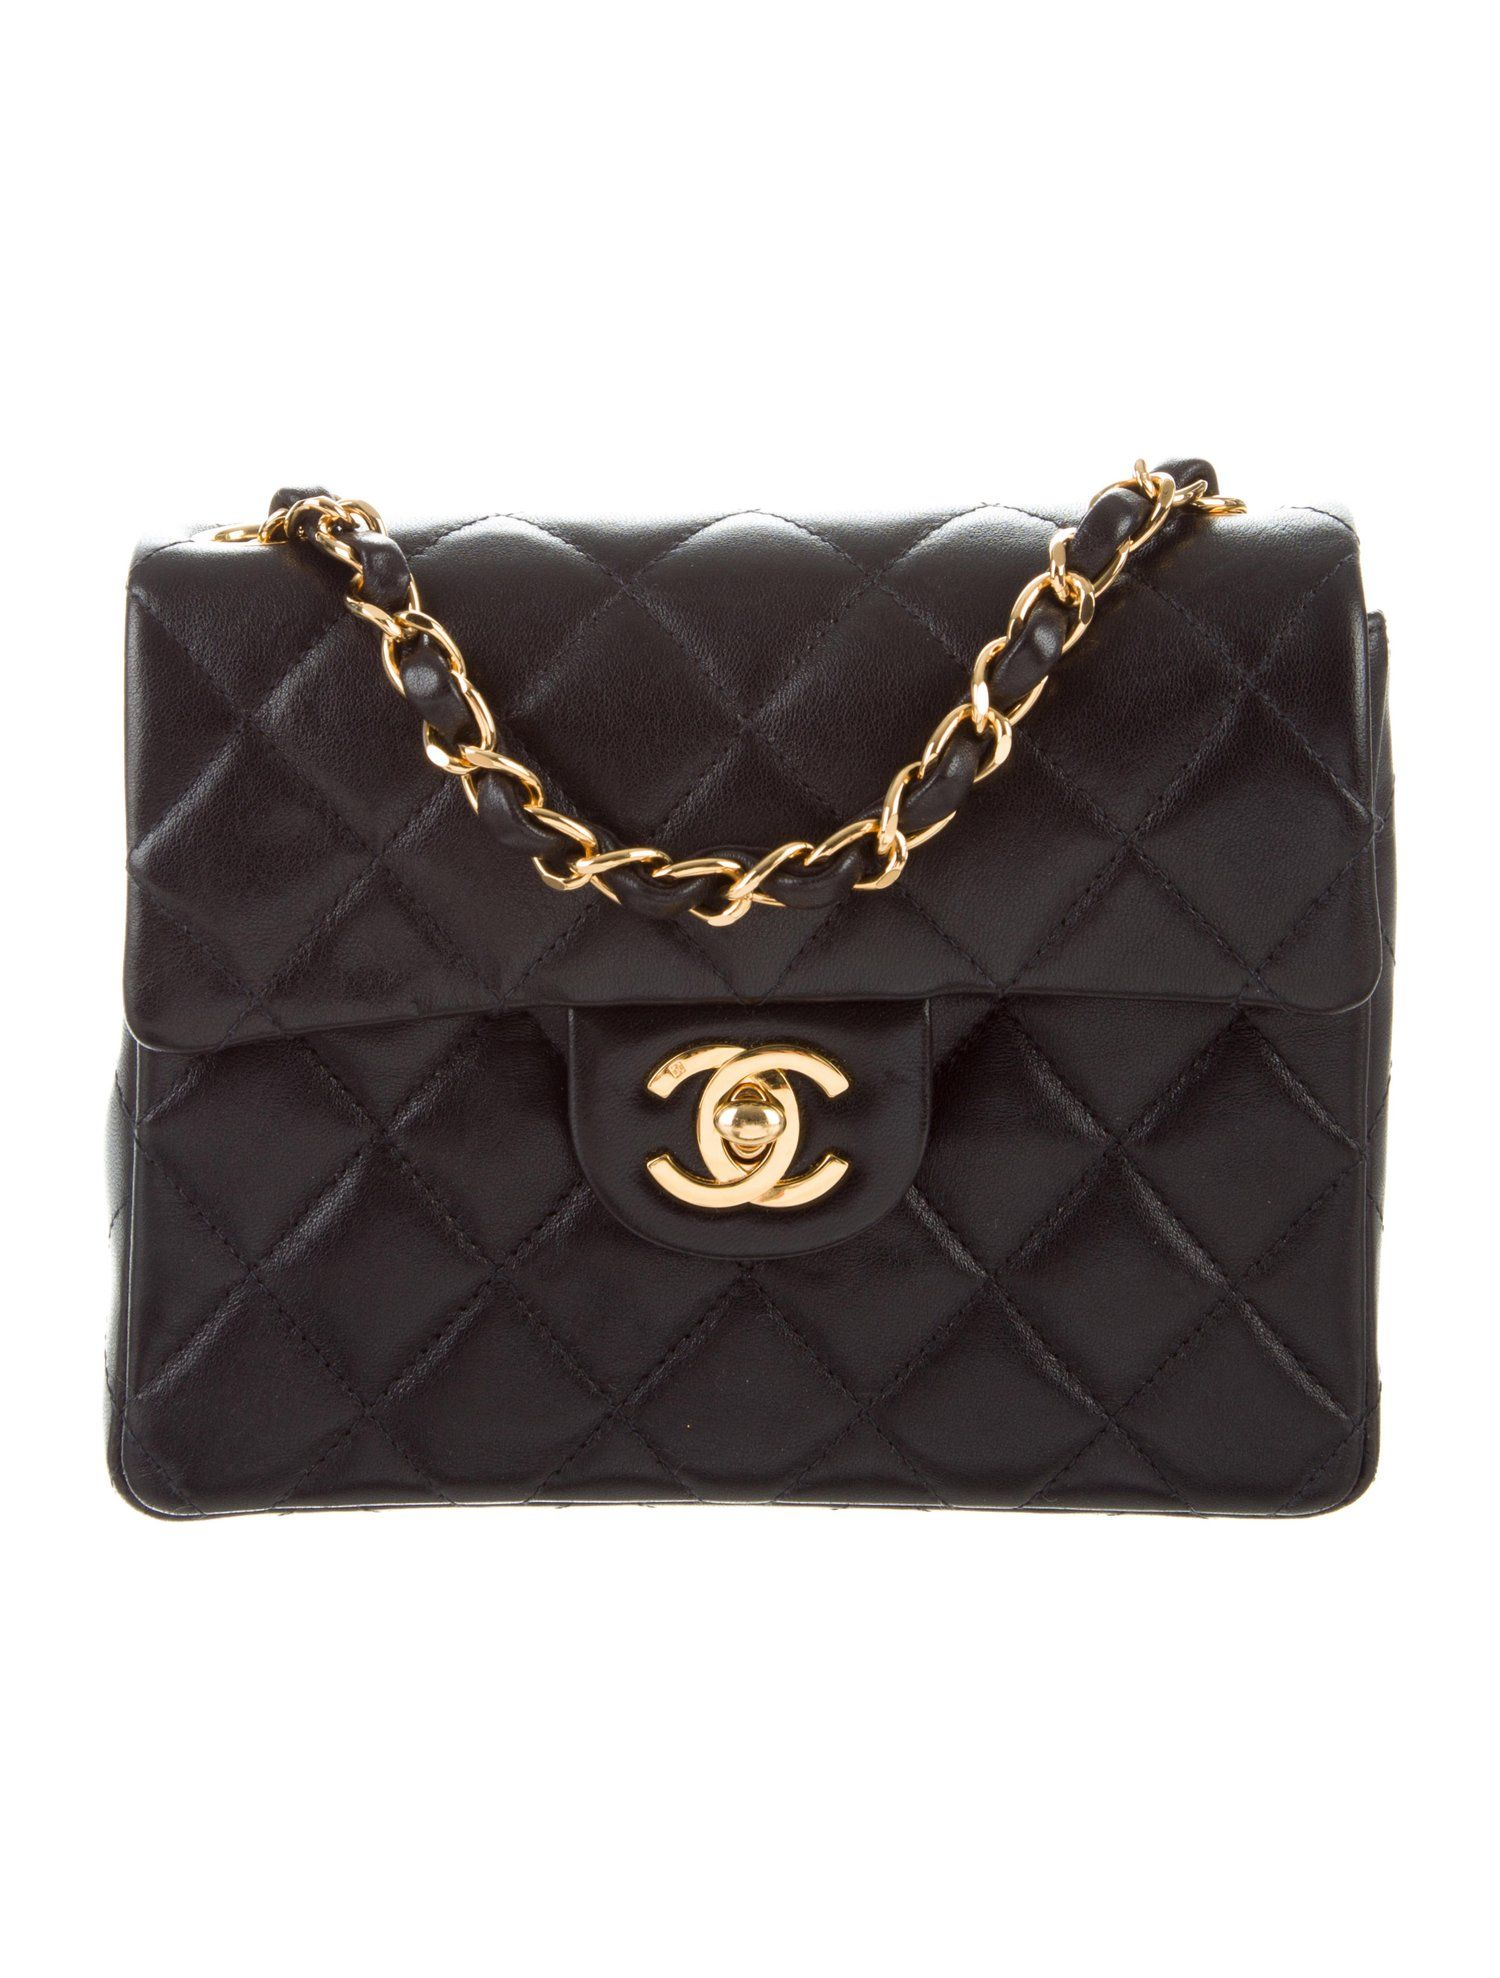 520074d93b9e Chanel Vintage Classic Mini Square Flap Bag - Handbags - CHA290622 | The  RealReal